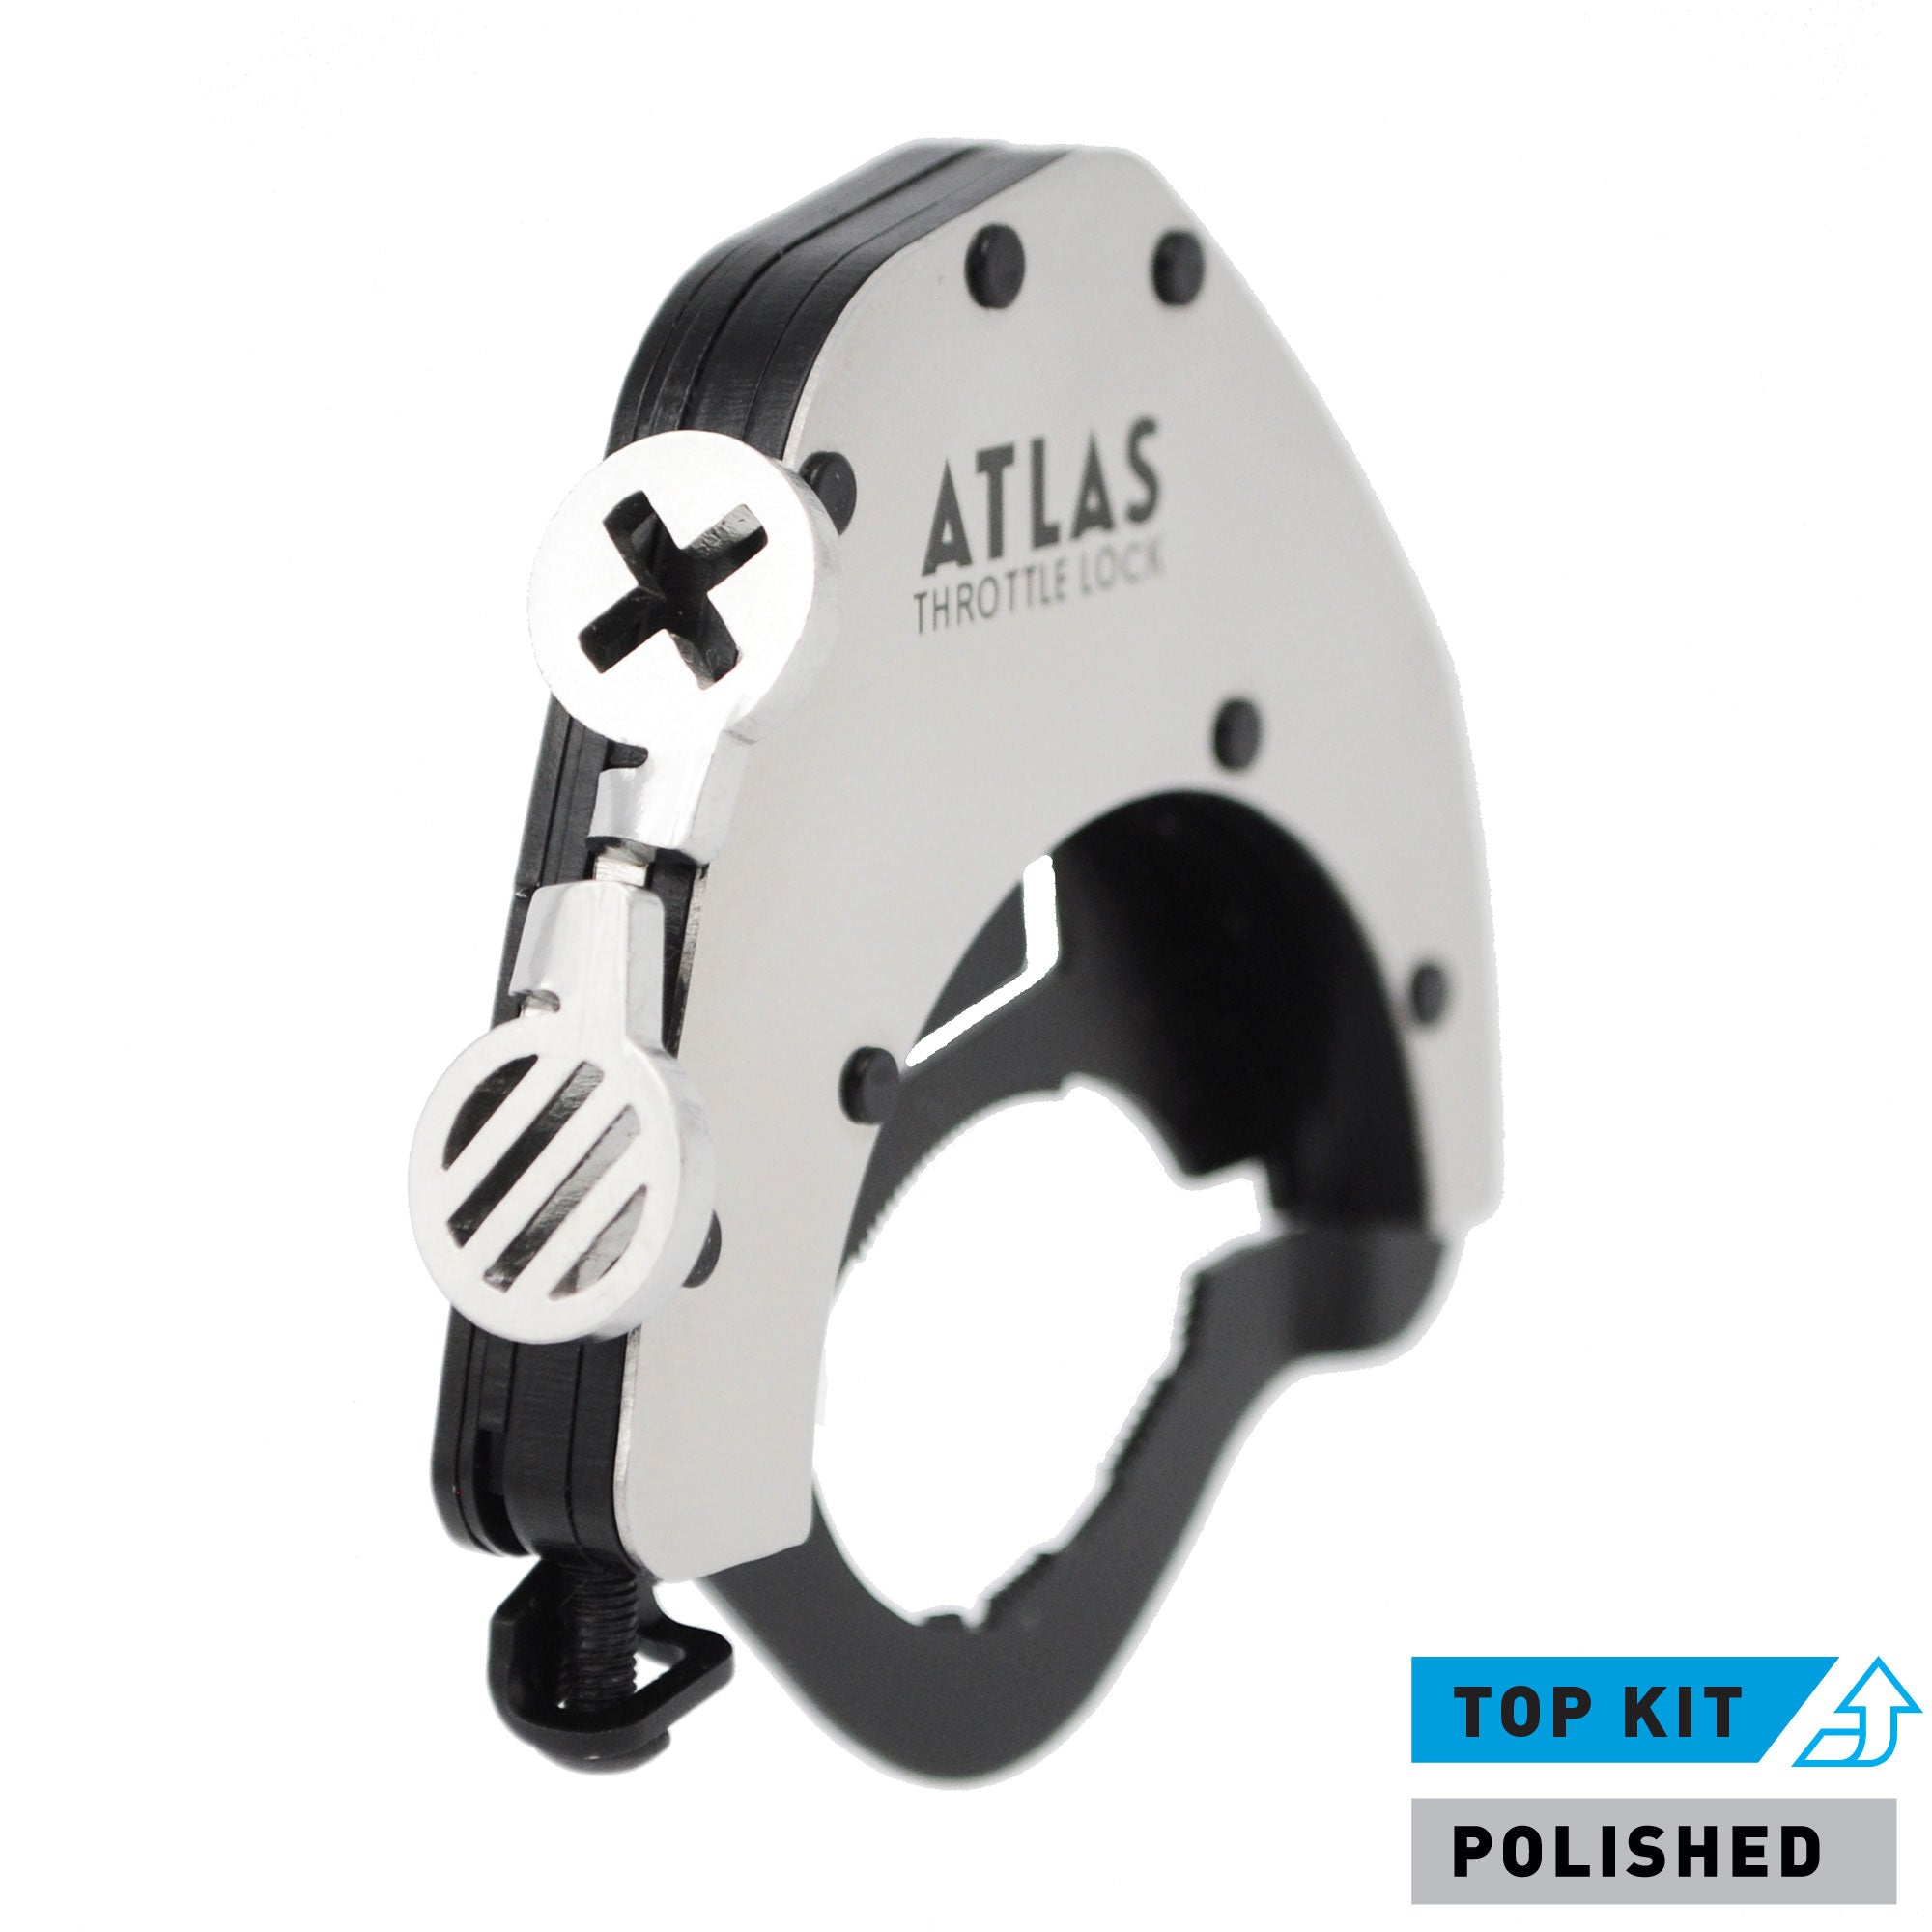 Moto Guzzi Motorcycles - ATLAS Throttle Lock